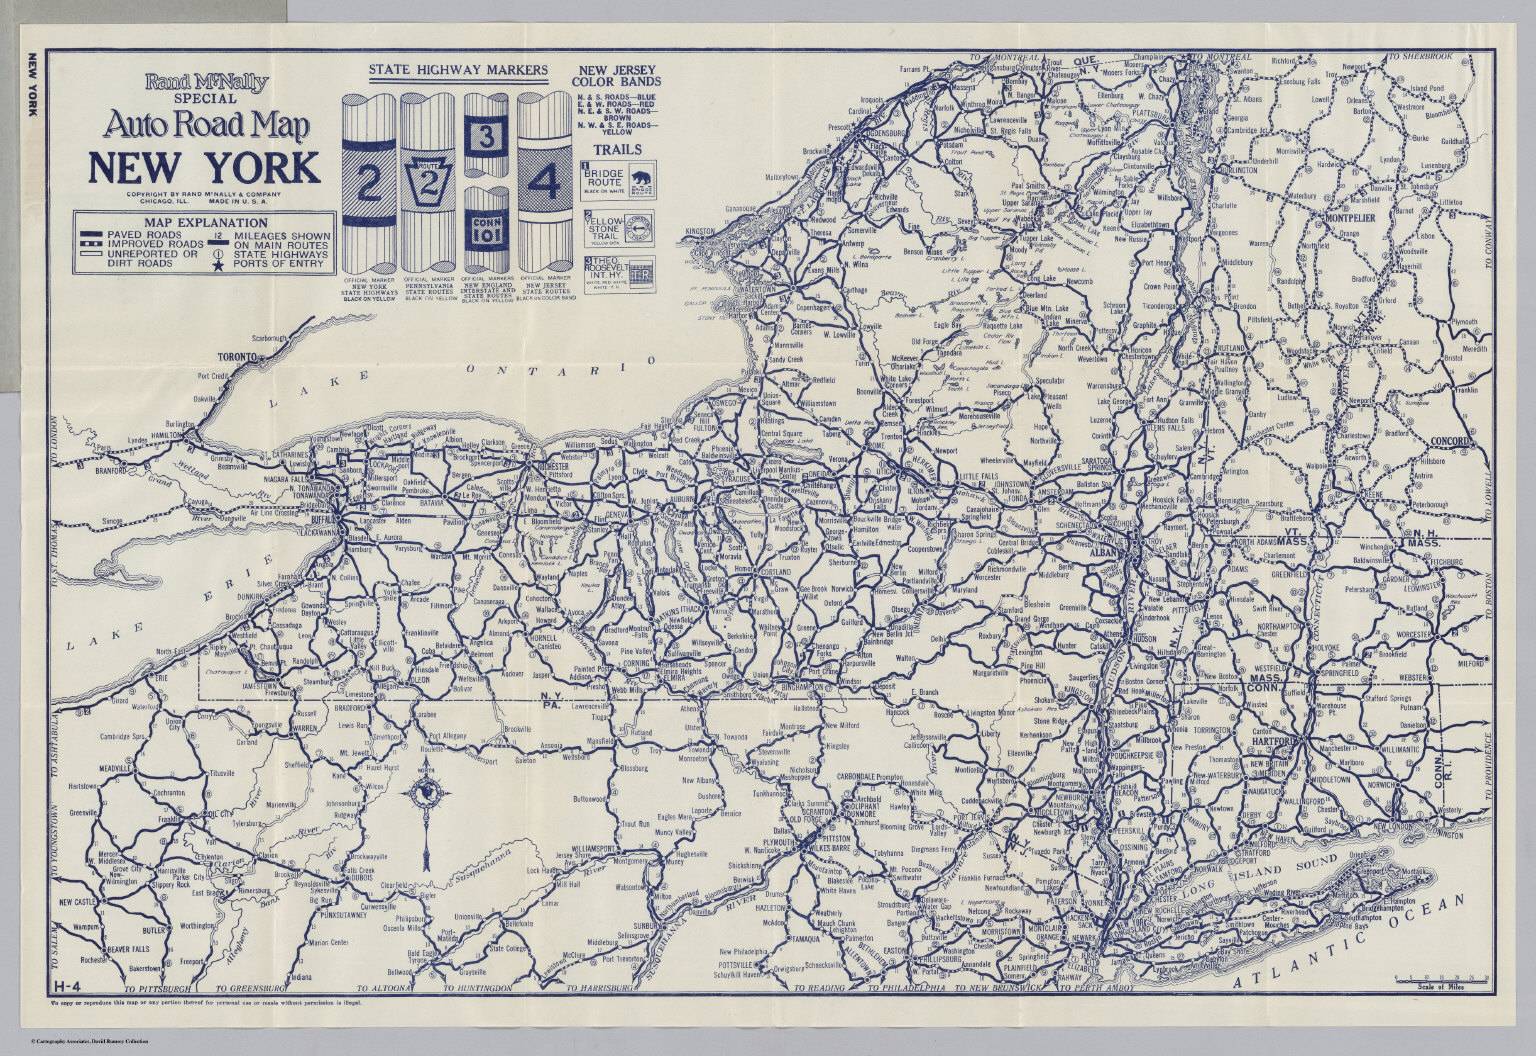 Auto Road Map New York David Rumsey Historical Map Collection - Road map new york